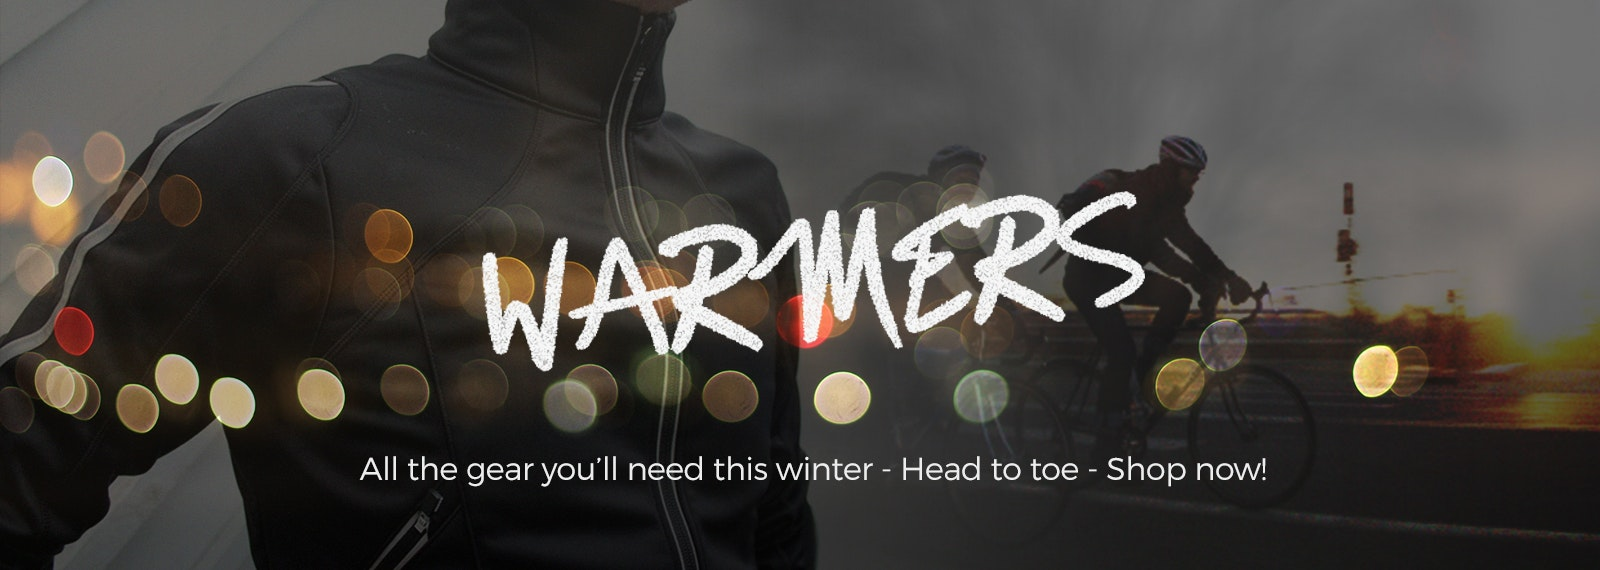 All the gear you'll need this winter